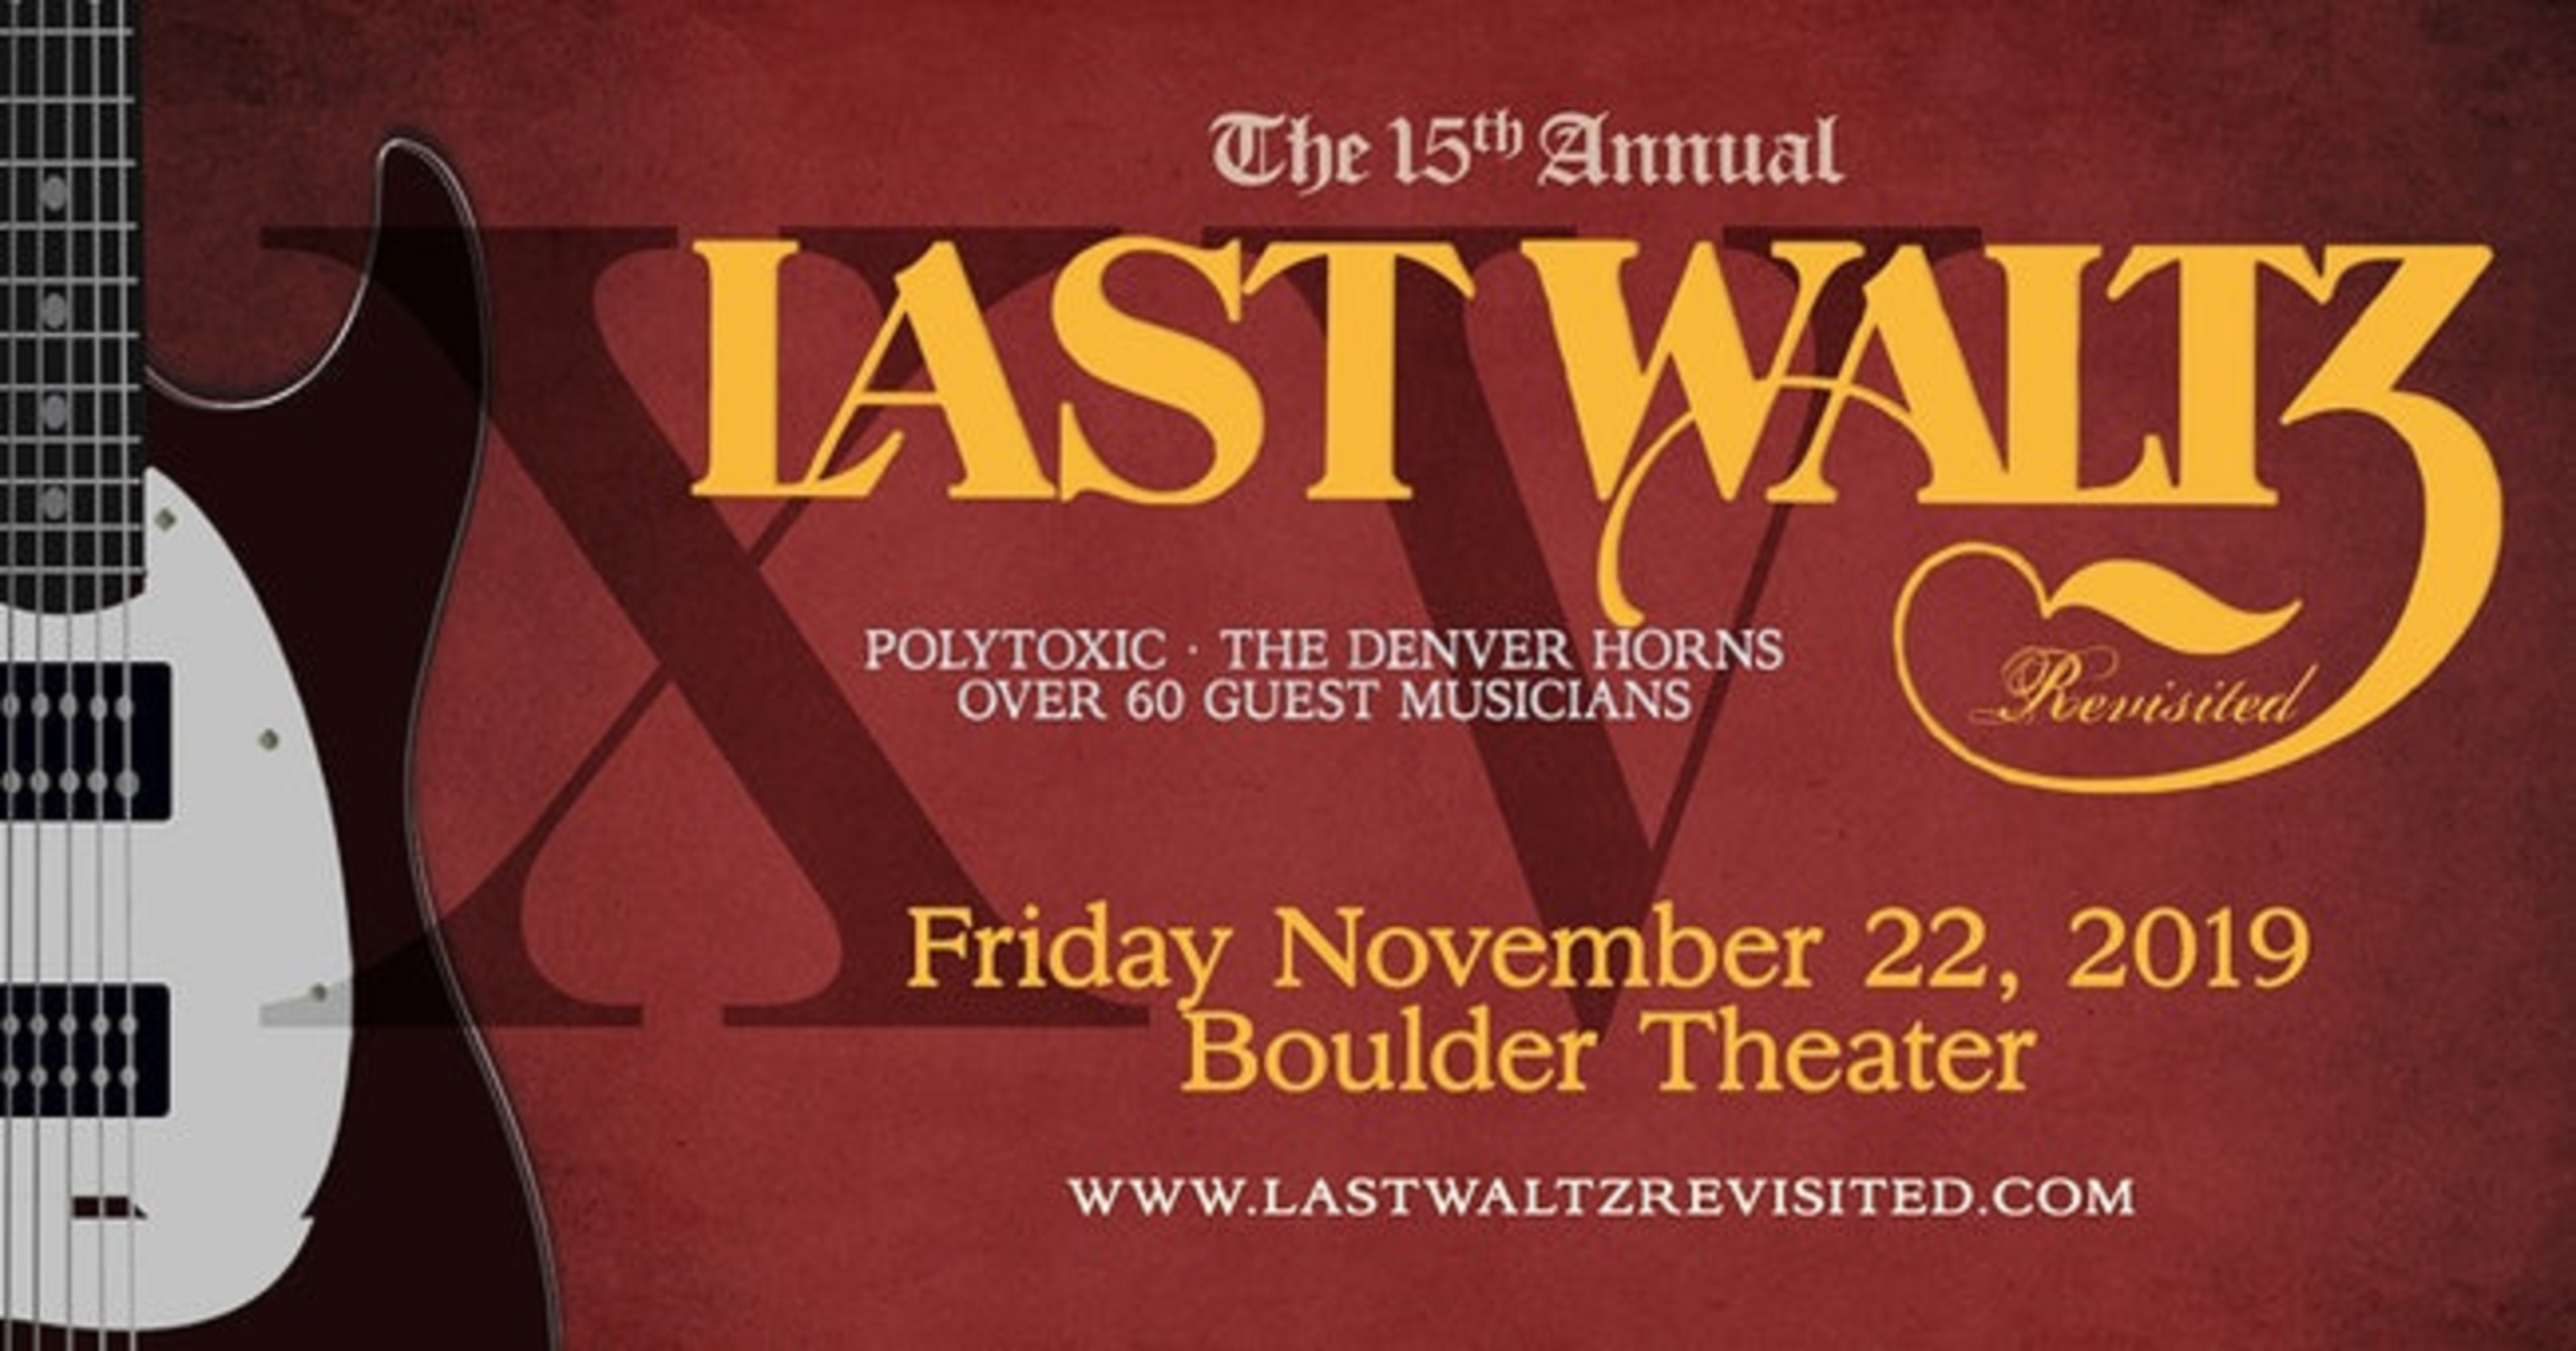 15th Annual The Last Waltz Revisited @ Boulder Theater | 11/22/19